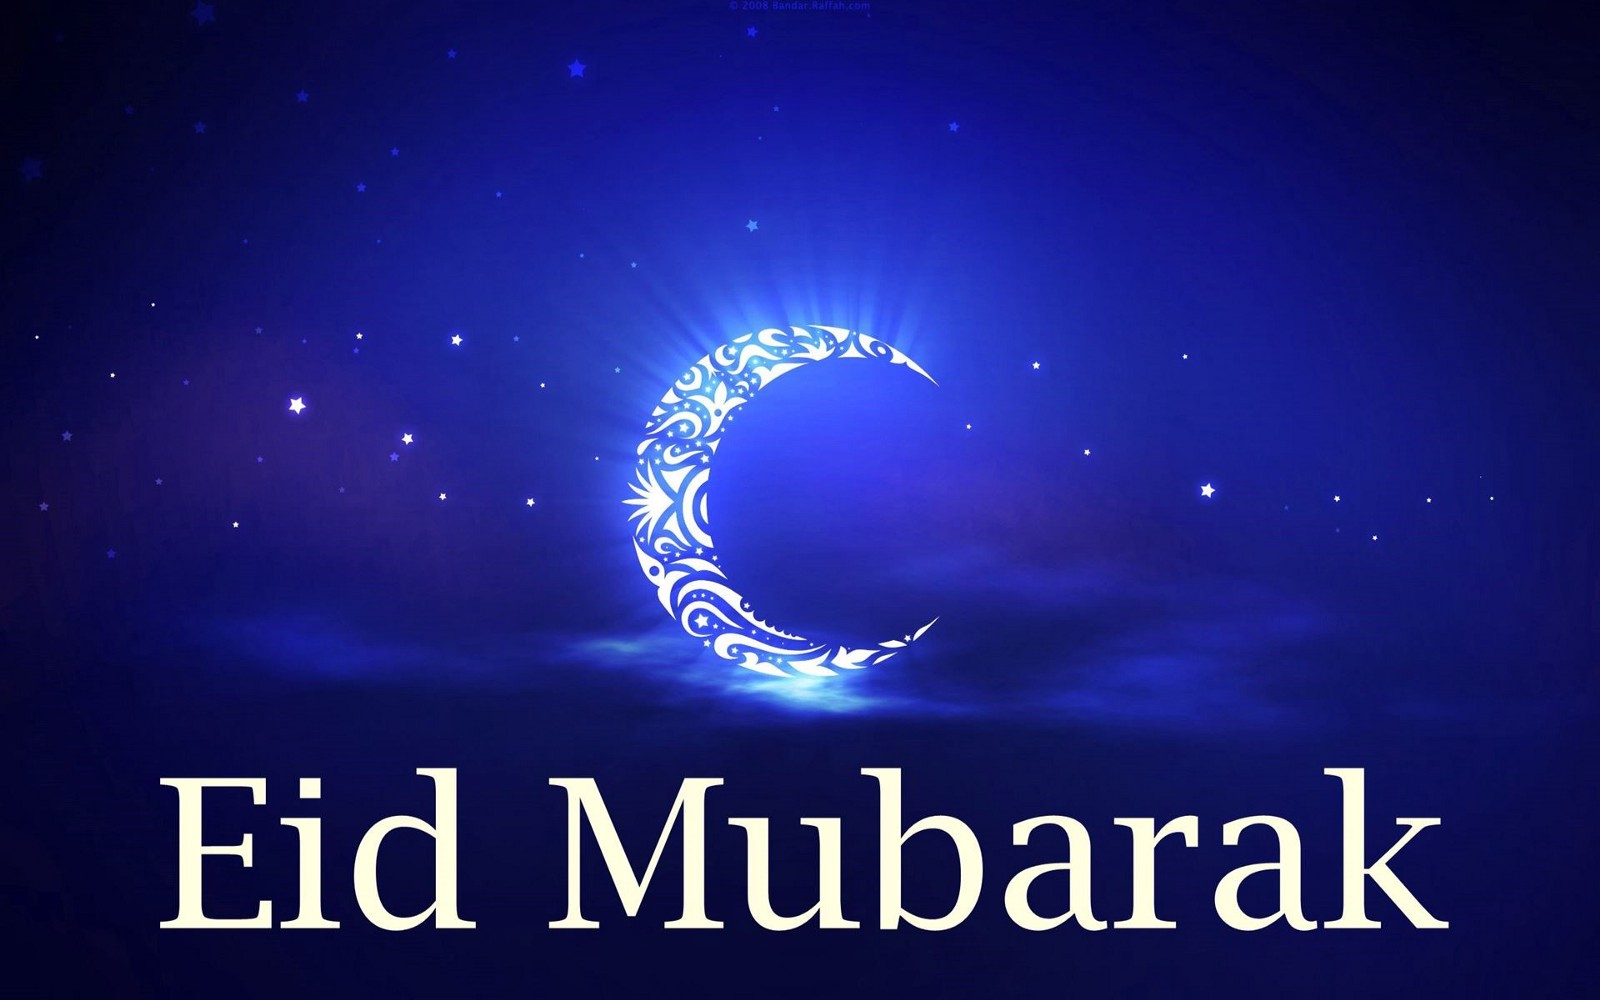 Eid Al Adhabakra Eid 2017 Signification Images Wishes Whatsapp